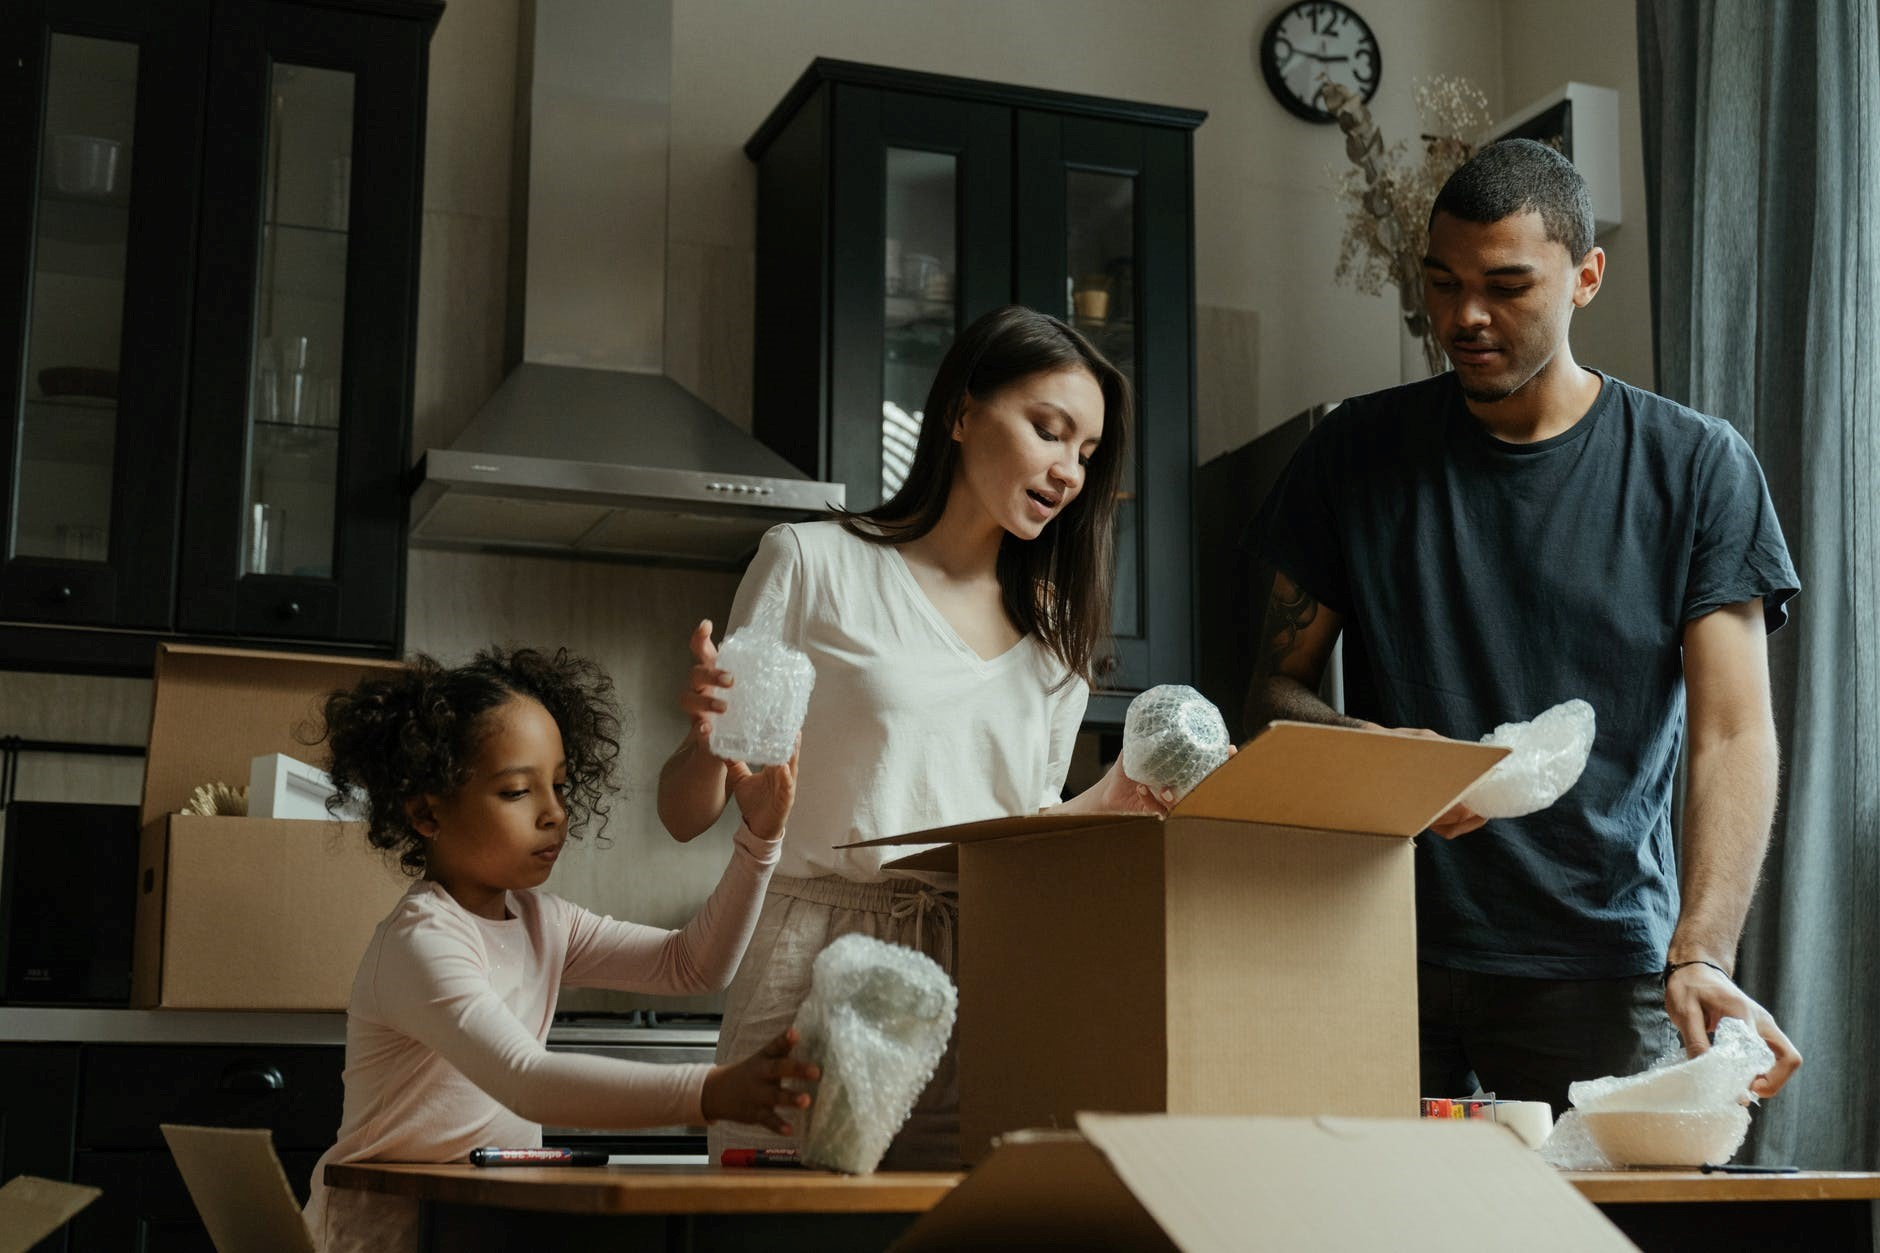 A family packs bubble-wrapped bowls and glasses into a cardboard box